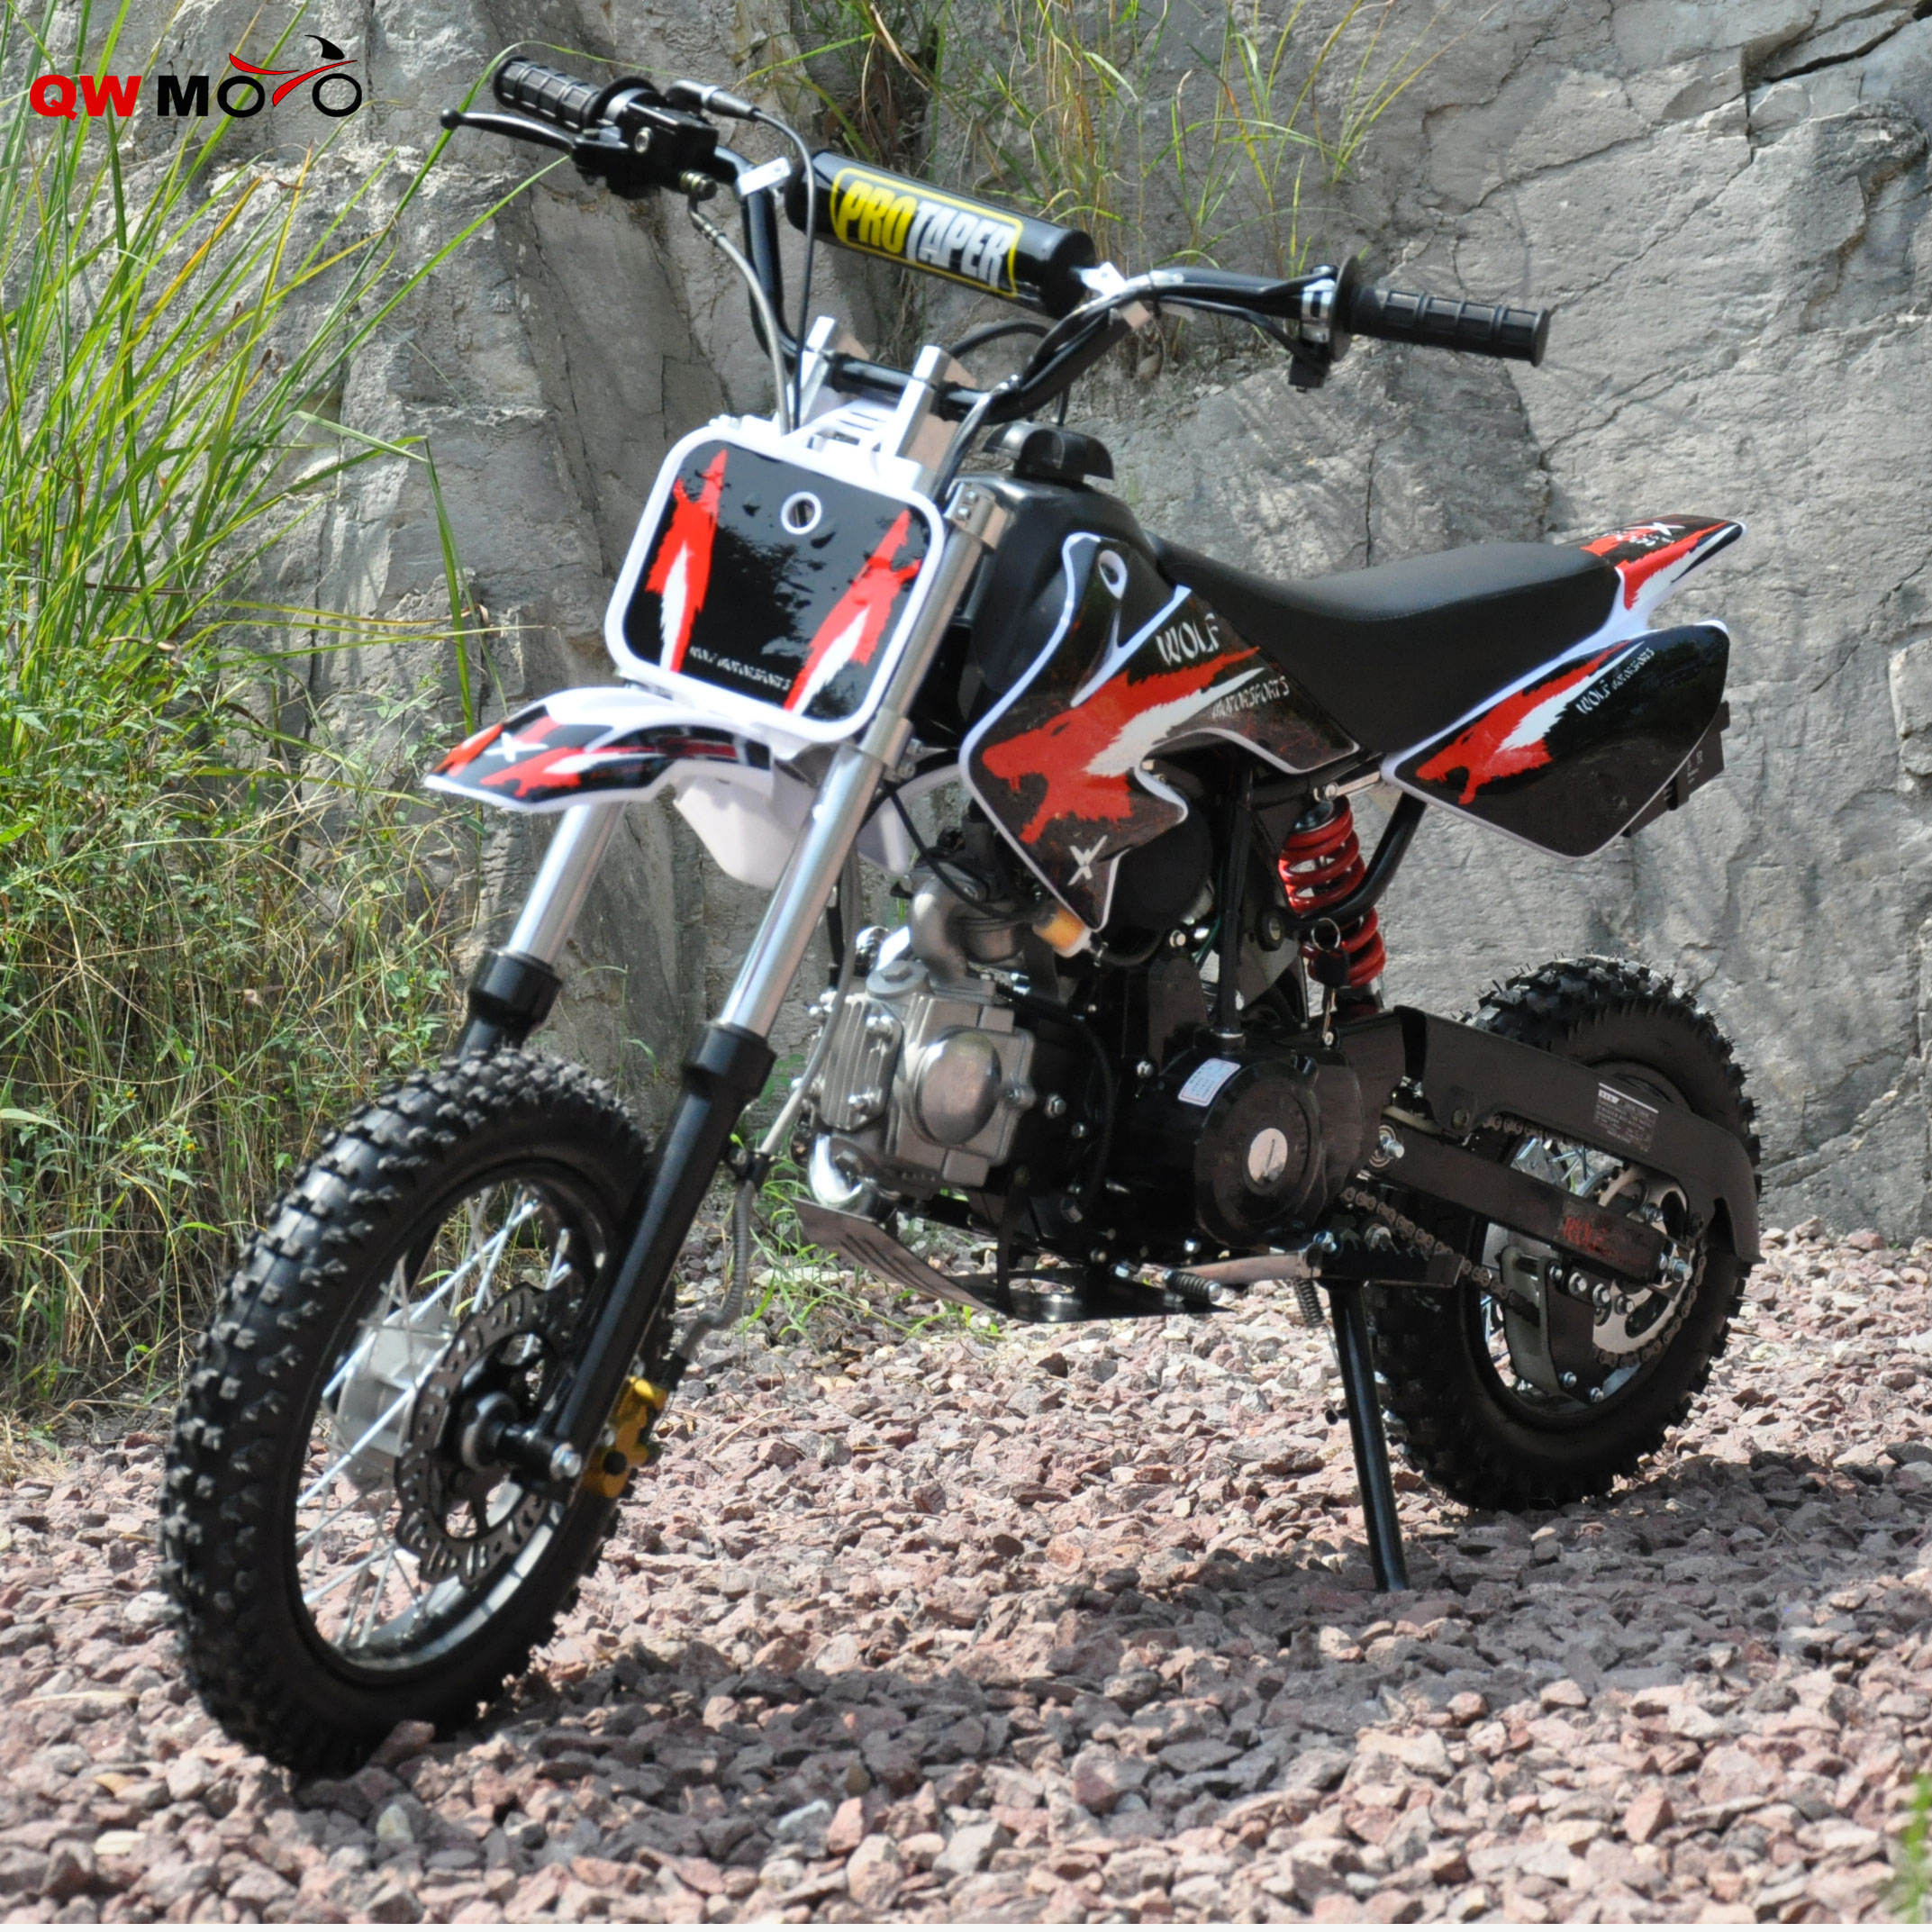 Qwmoto Cool Design Crf <span class=keywords><strong>50</strong></span> Stijl 50cc Mini Pit Bike 110cc Mini Crossmotor Voor Goedkope Koop